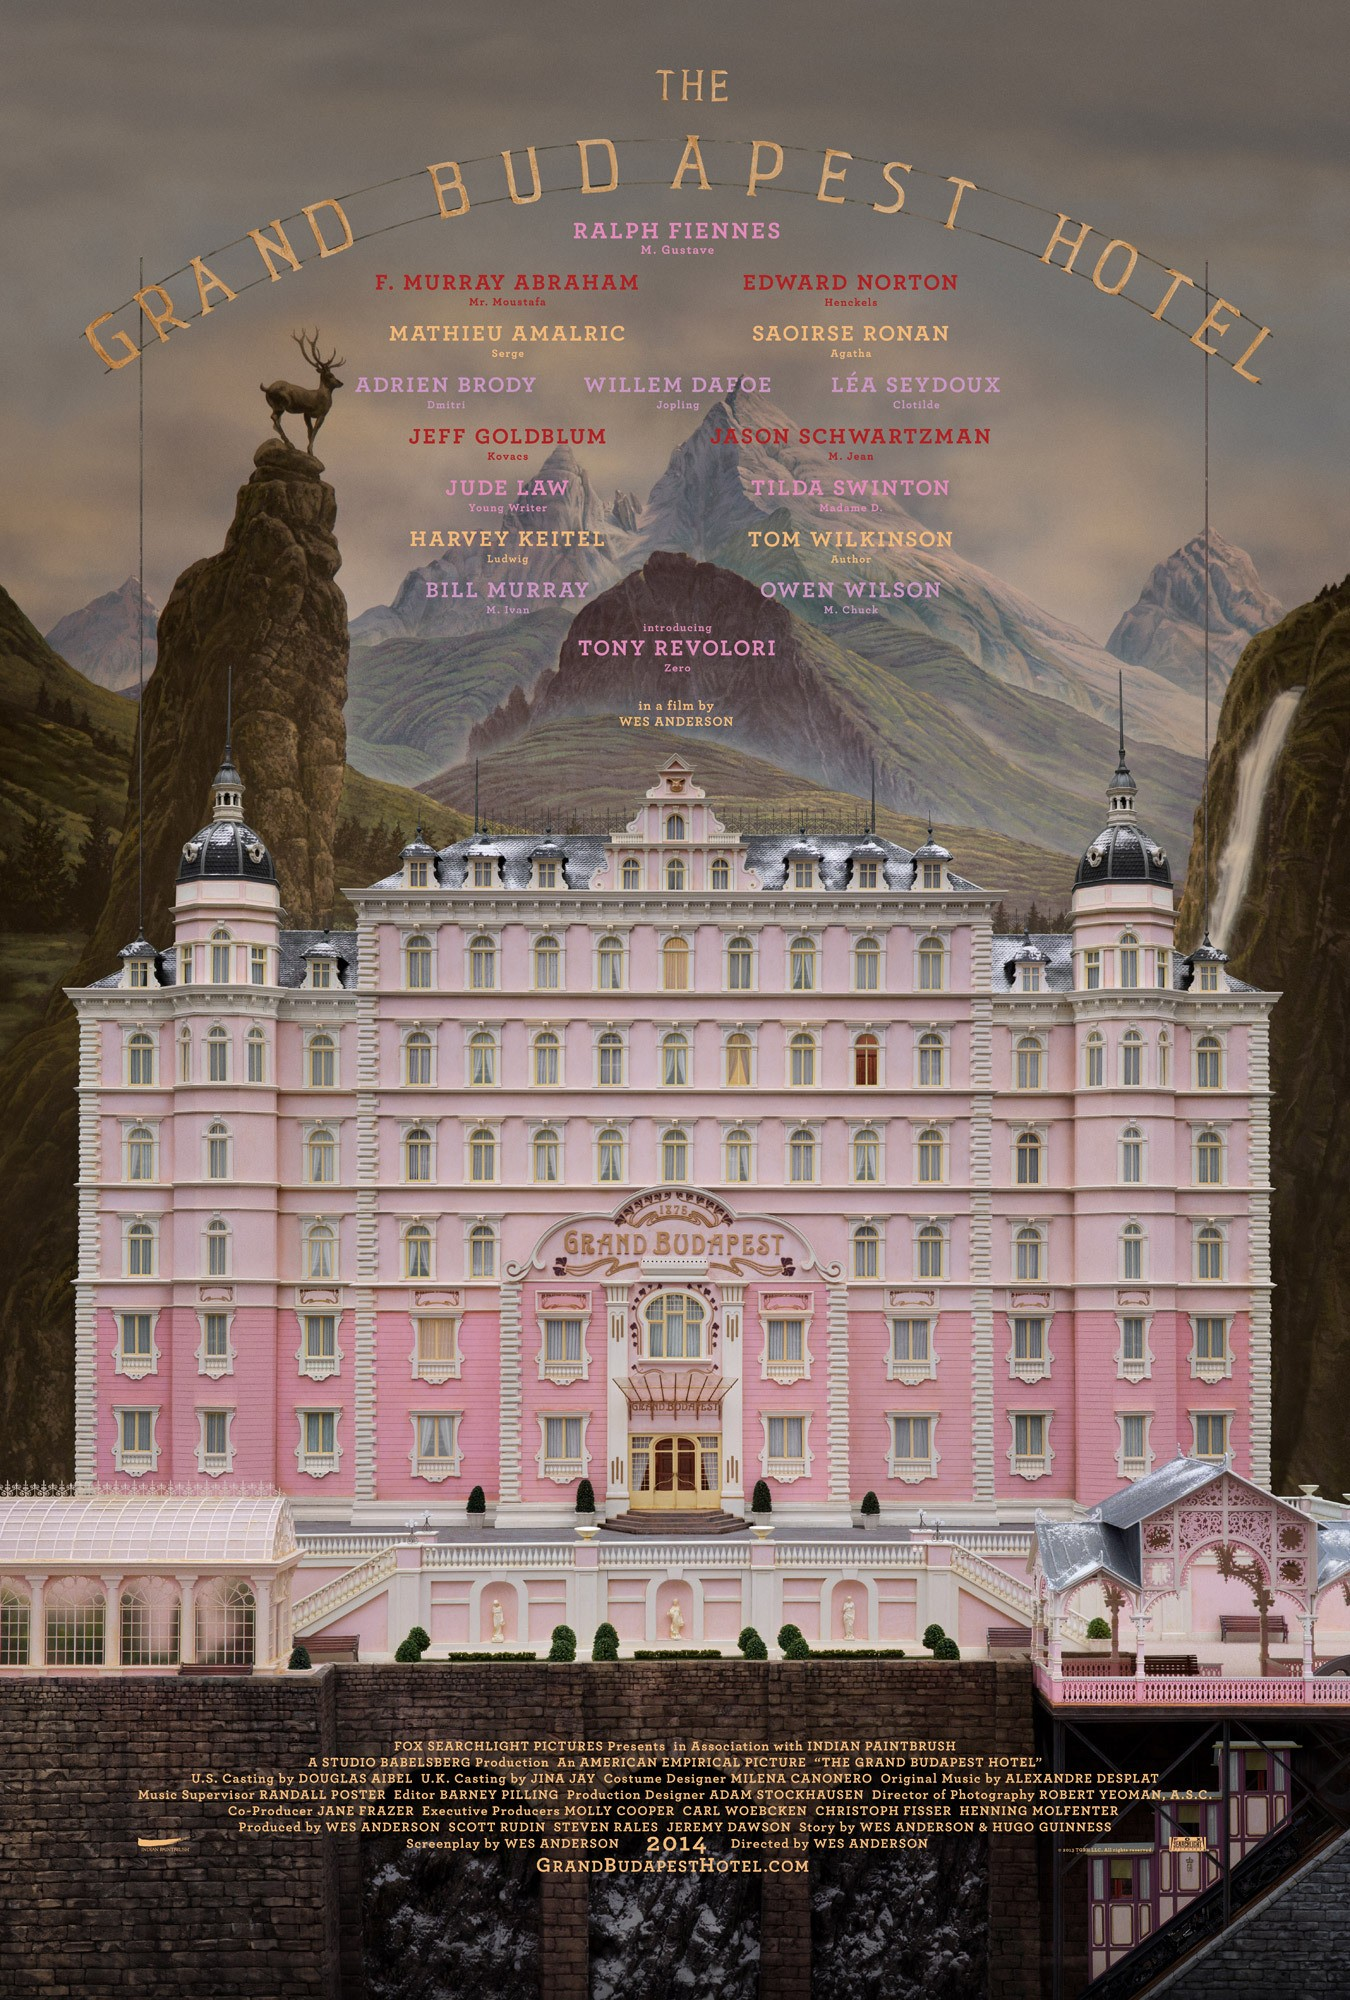 The Grand Budapest Hotel-Official Poster Banner PROMO POSTER-15OUTUBRO2013